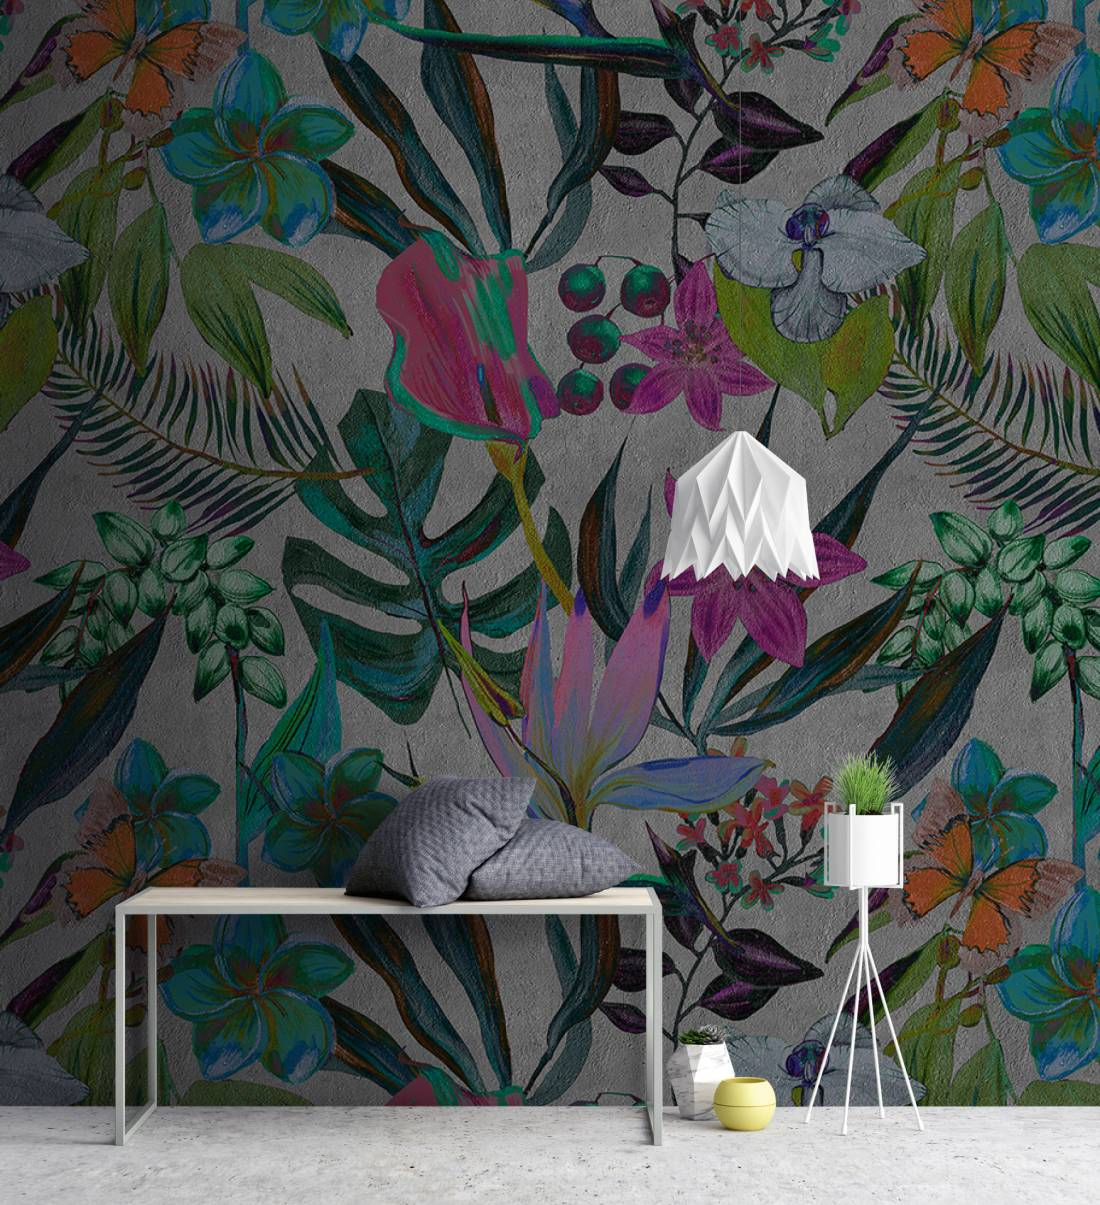 Exotic Night Floral & Palm Leaf Wallpaper Mural in Grey, Pink, Green & Turquoise